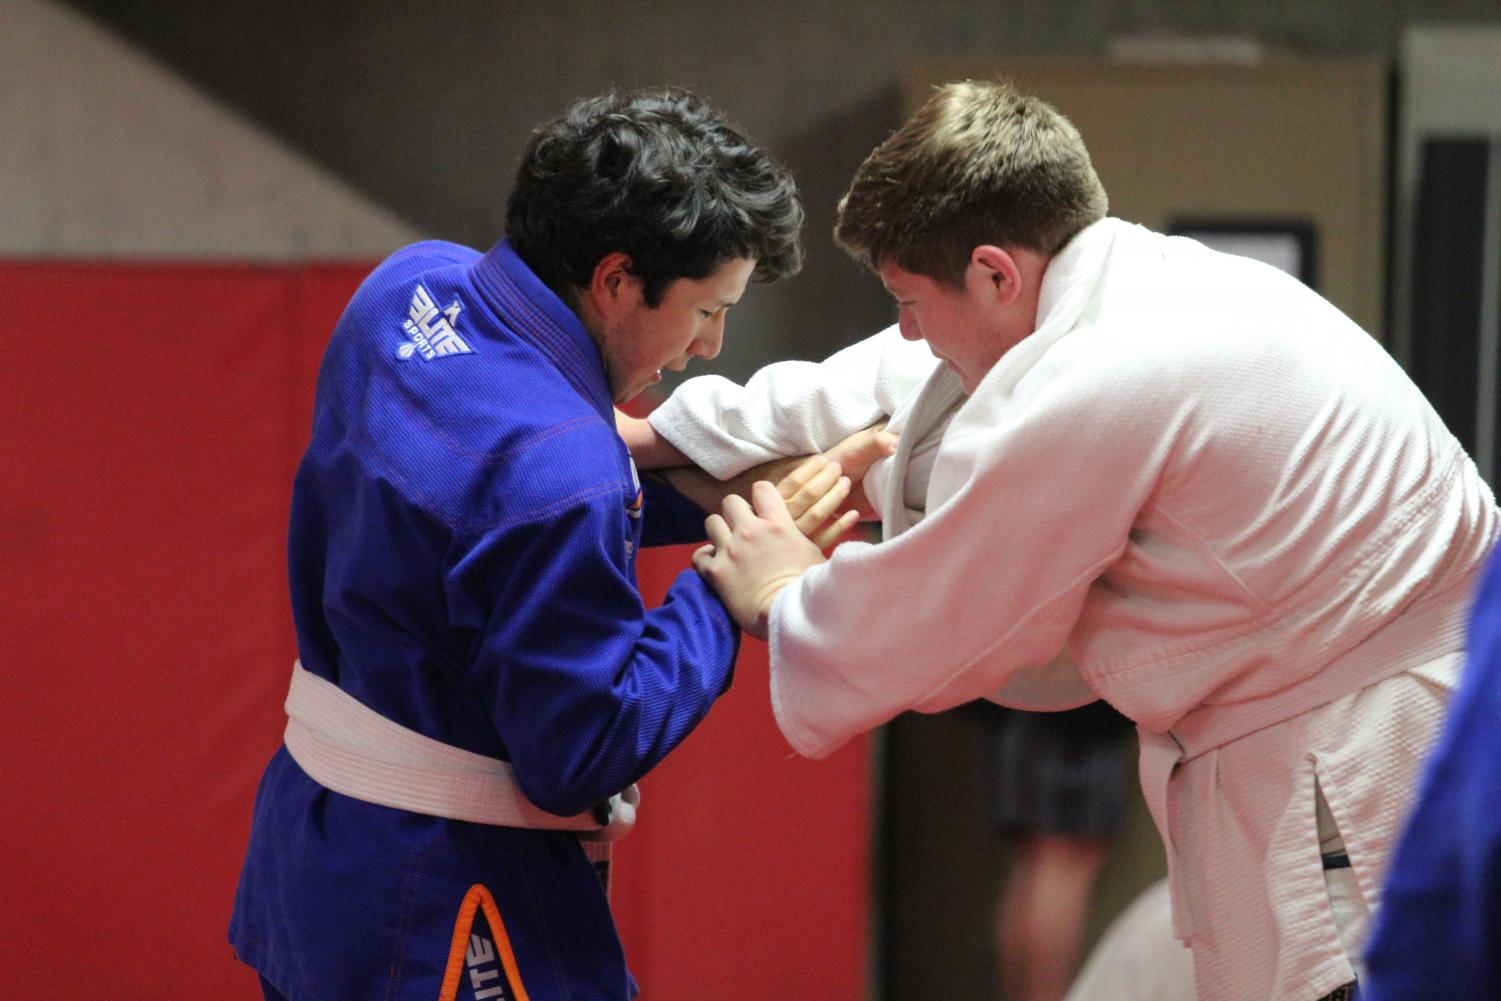 Members of the Brazilian ju-jitsu club grapple in practice on Oct. 22. The club meets bi-weekly in Reece Pavilion 309B.